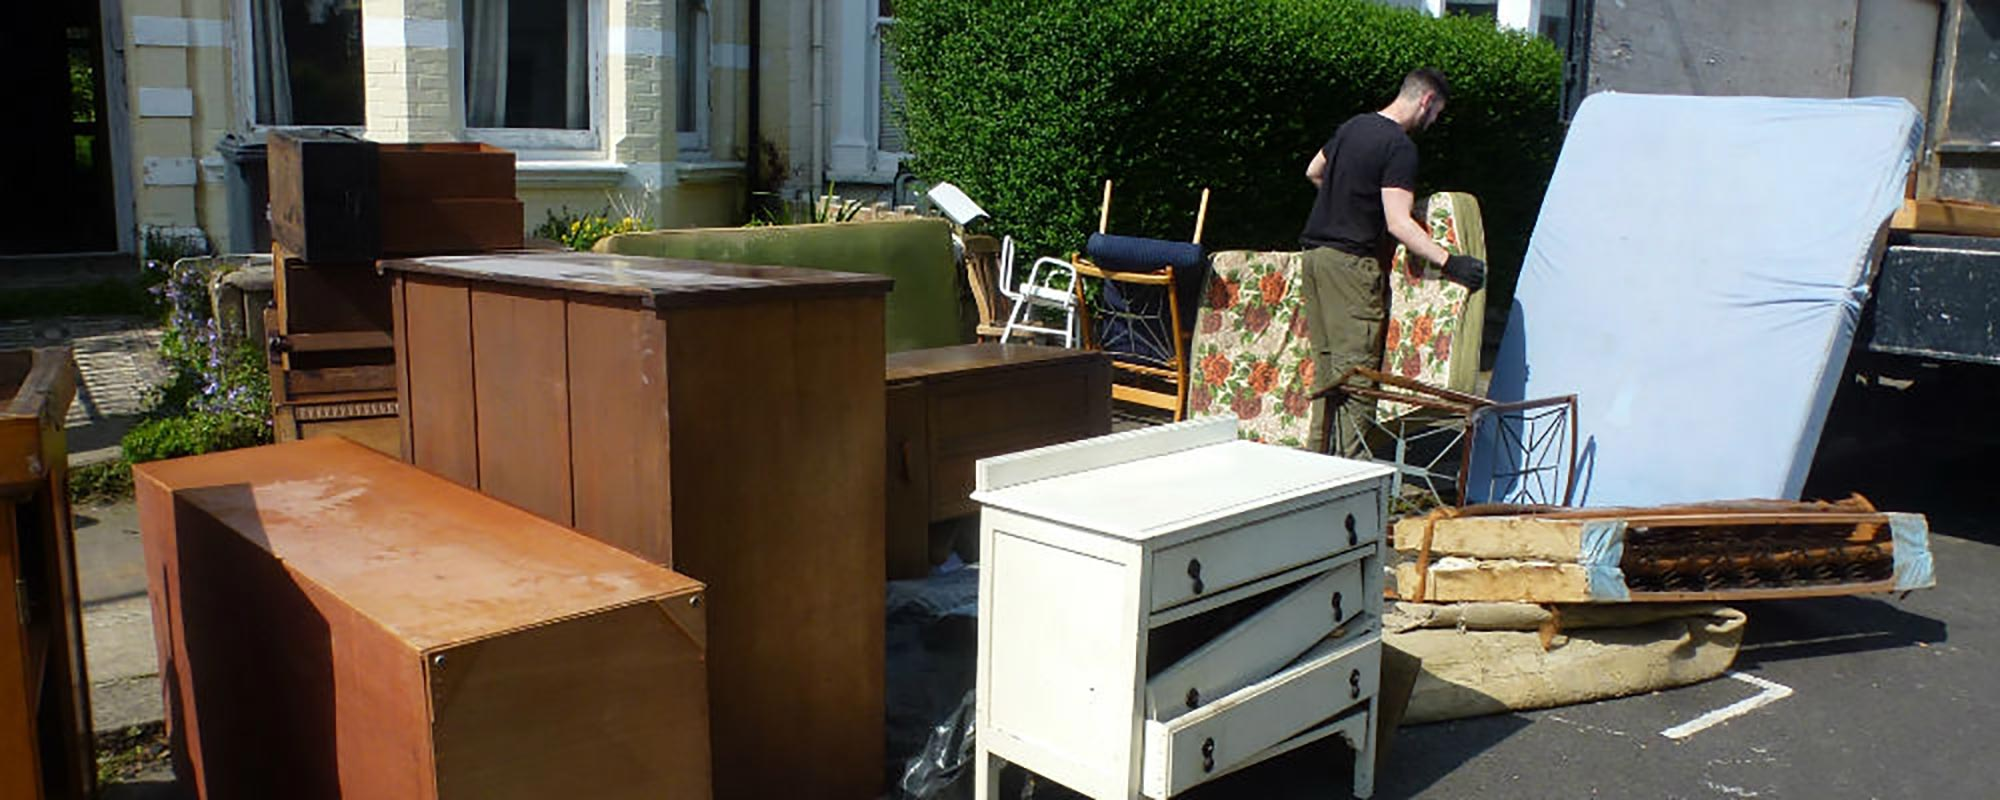 furniture disposal london london furniture disposal